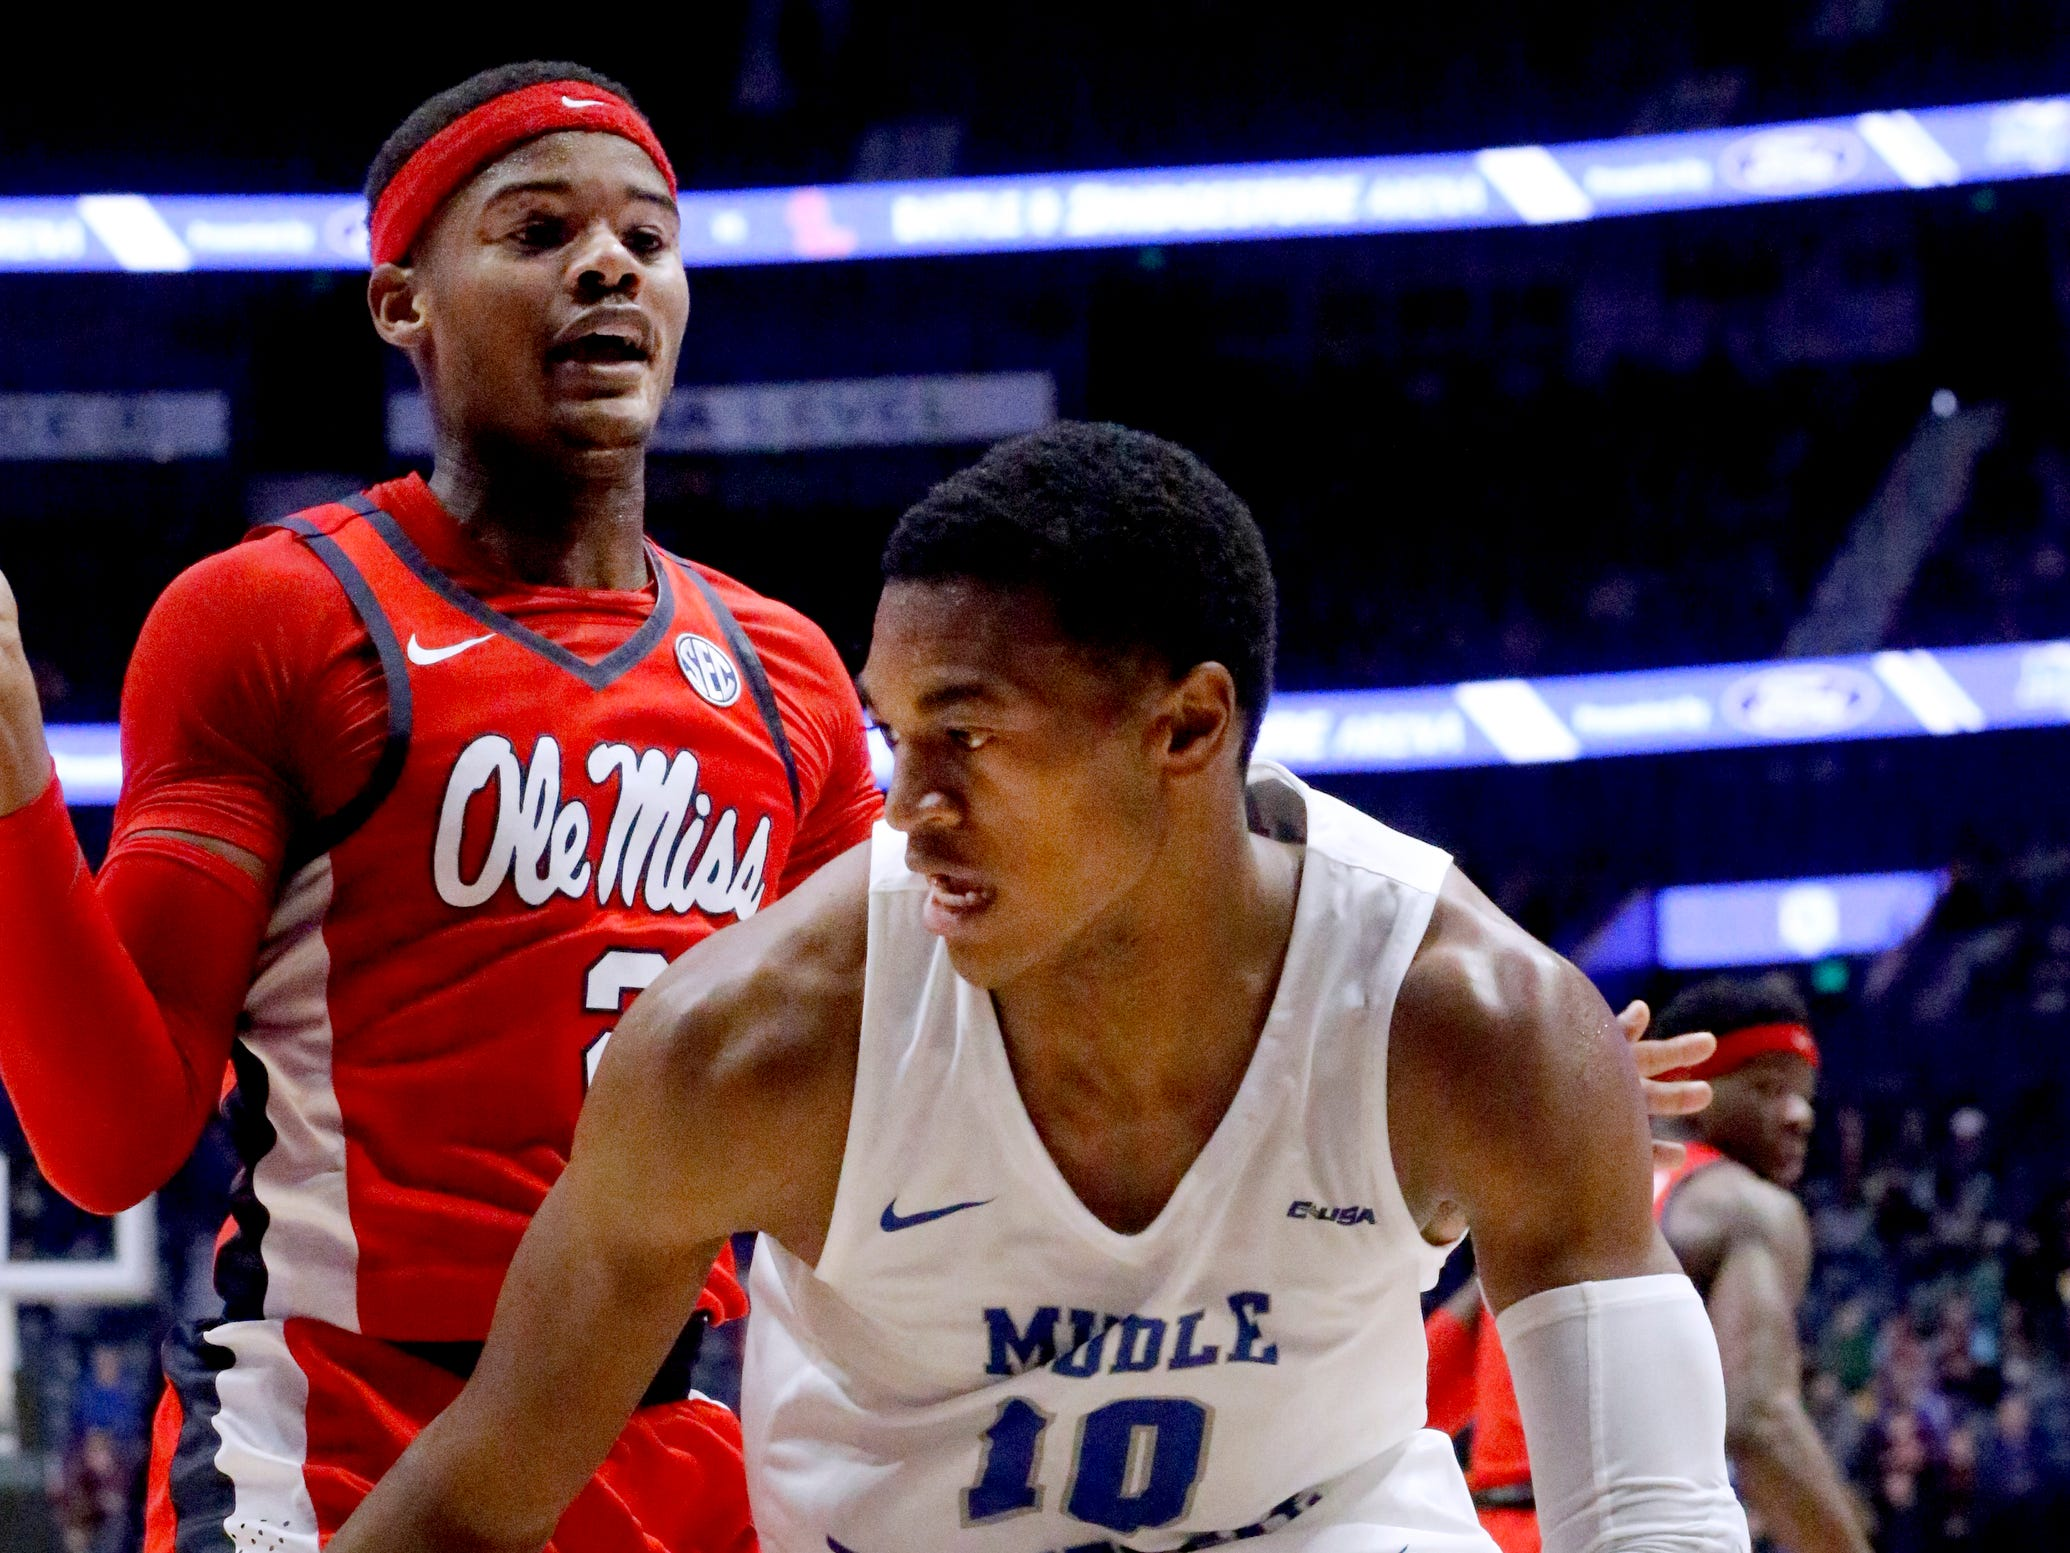 MTSU's guard Jayce Johnson (10) drives to the basket as Ole Miss' guard Terence Davis (3) guards him on Friday Dec. 21, 2018, at Bridgestone Arena.